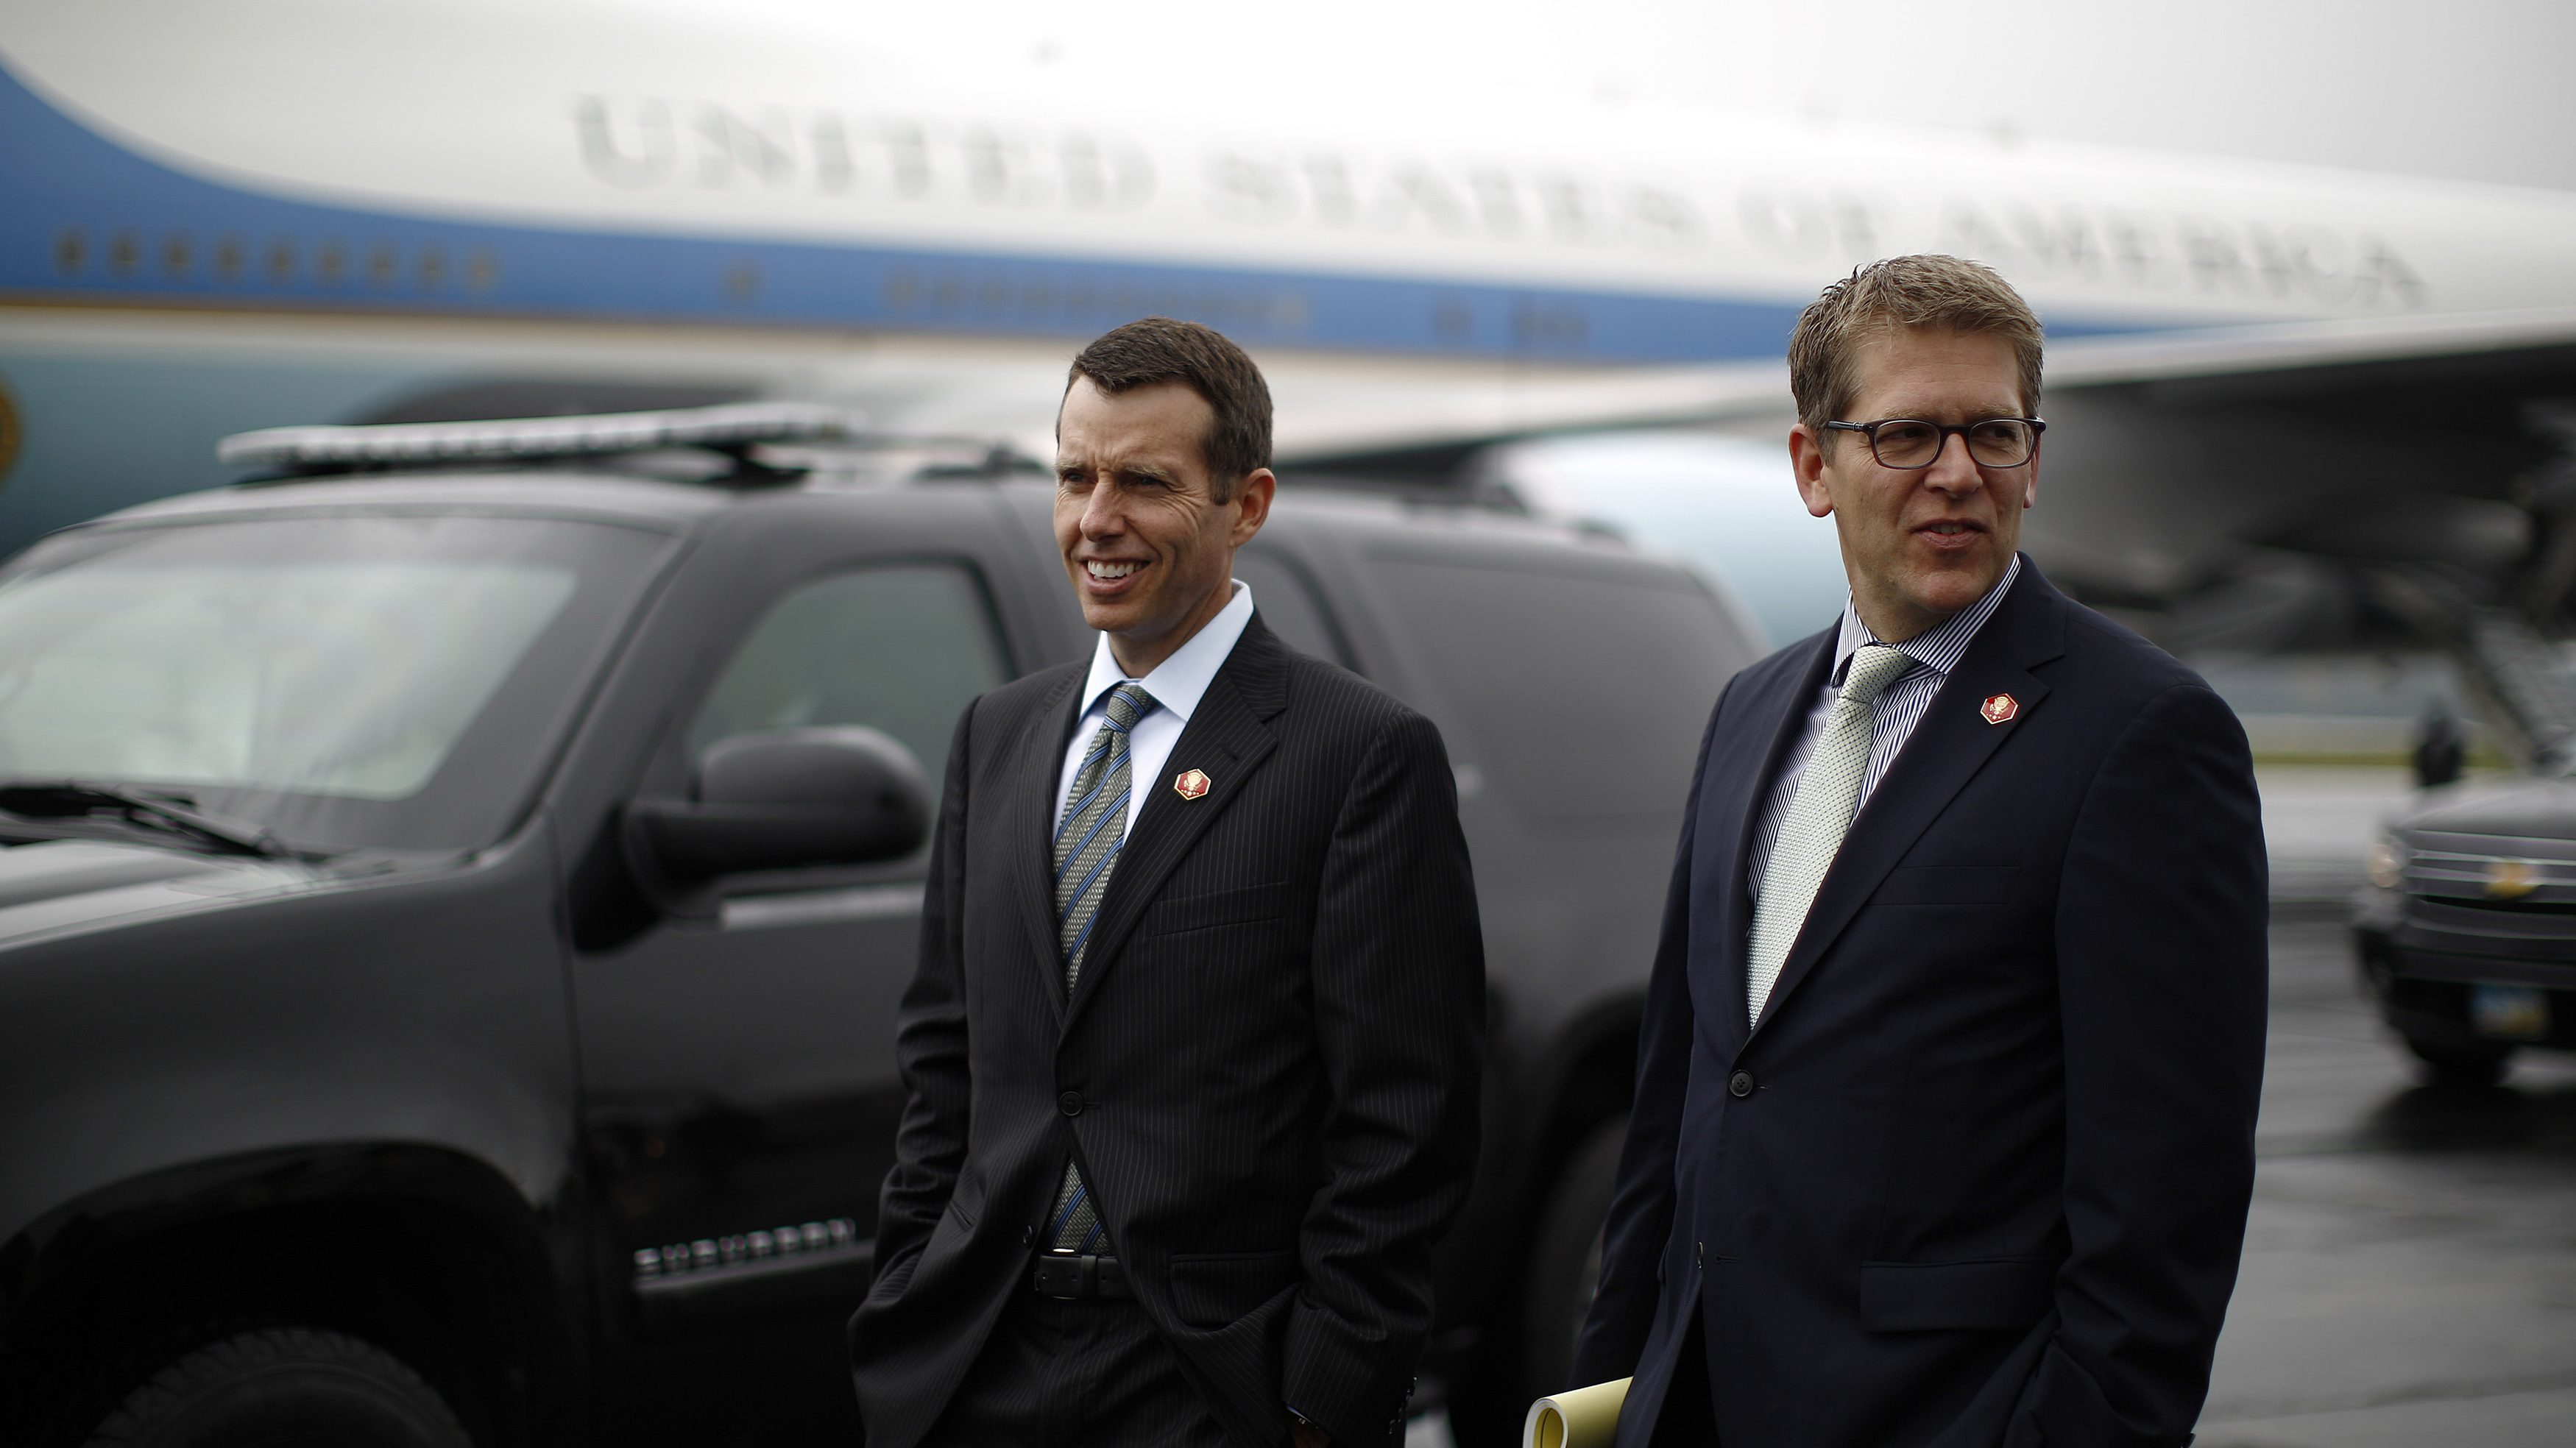 David Plouffe (L), senior advisor to U.S. President Barack Obama and White House Press Secretary Jay Carney are pictured upon their arrival in Swanton, Ohio, September 26, 2012. Obama is campaigning in Ohio on Wednesday.  REUTERS/Jason Reed  (UNITED STATES - Tags: POLITICS ELECTIONS USA PRESIDENTIAL ELECTION) - RTR38G69